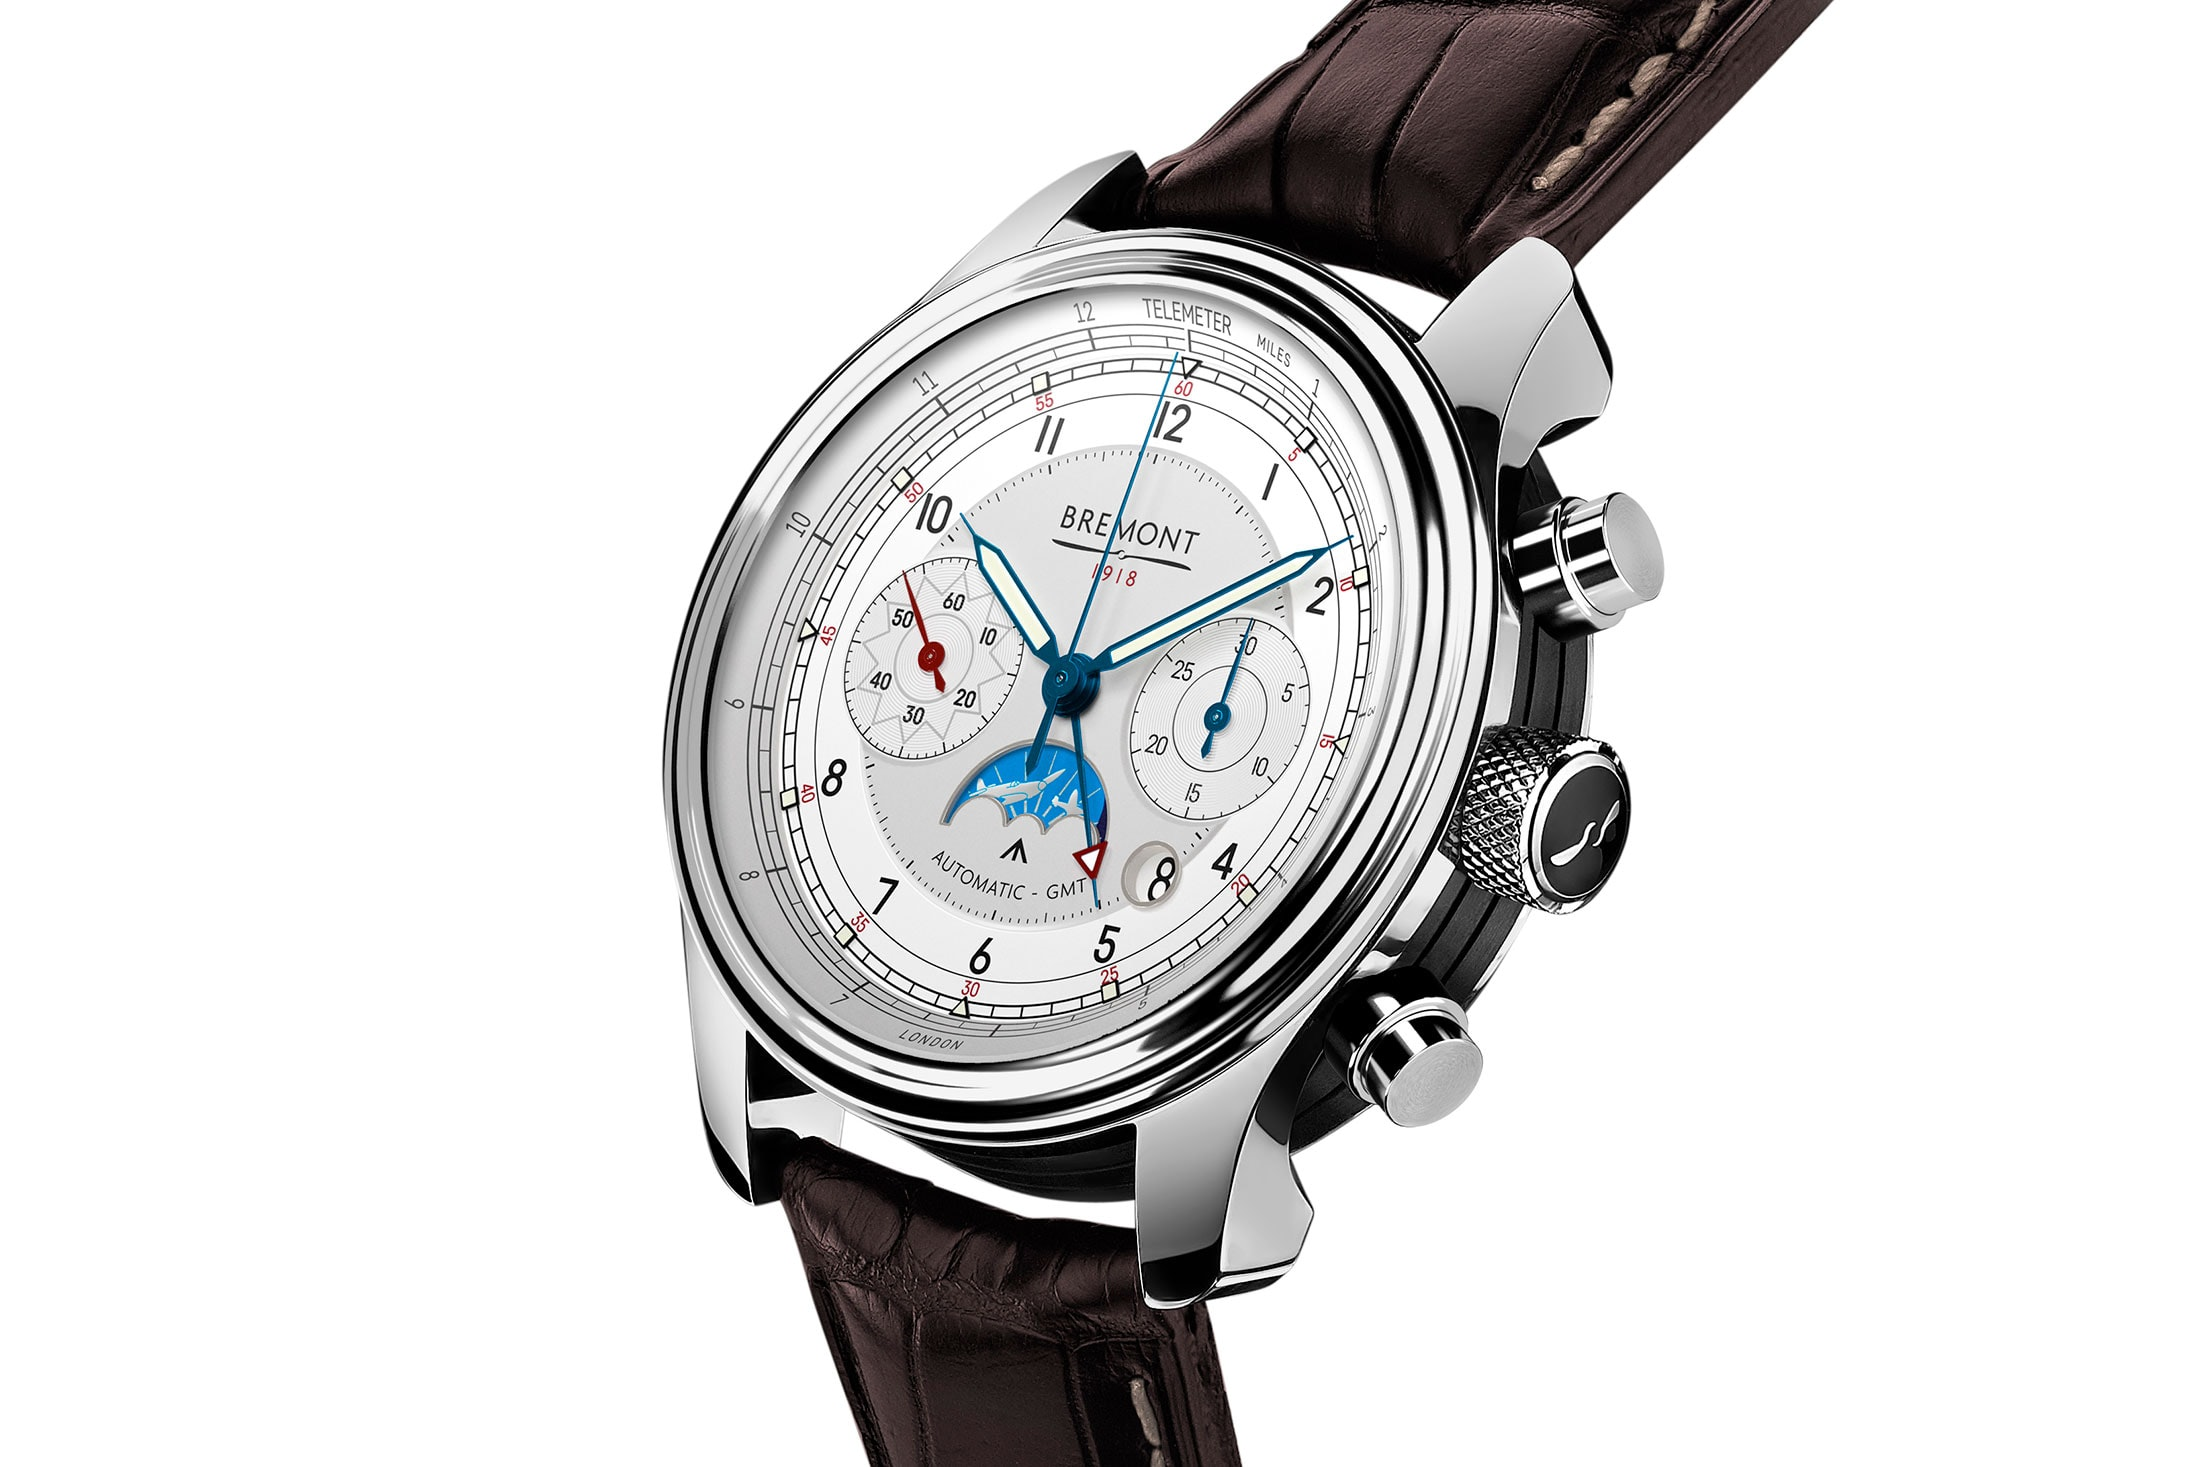 bremont 1918 limited edition Introducing: The Bremont 1918 Limited Edition Chronograph Introducing: The Bremont 1918 Limited Edition Chronograph bremont 02